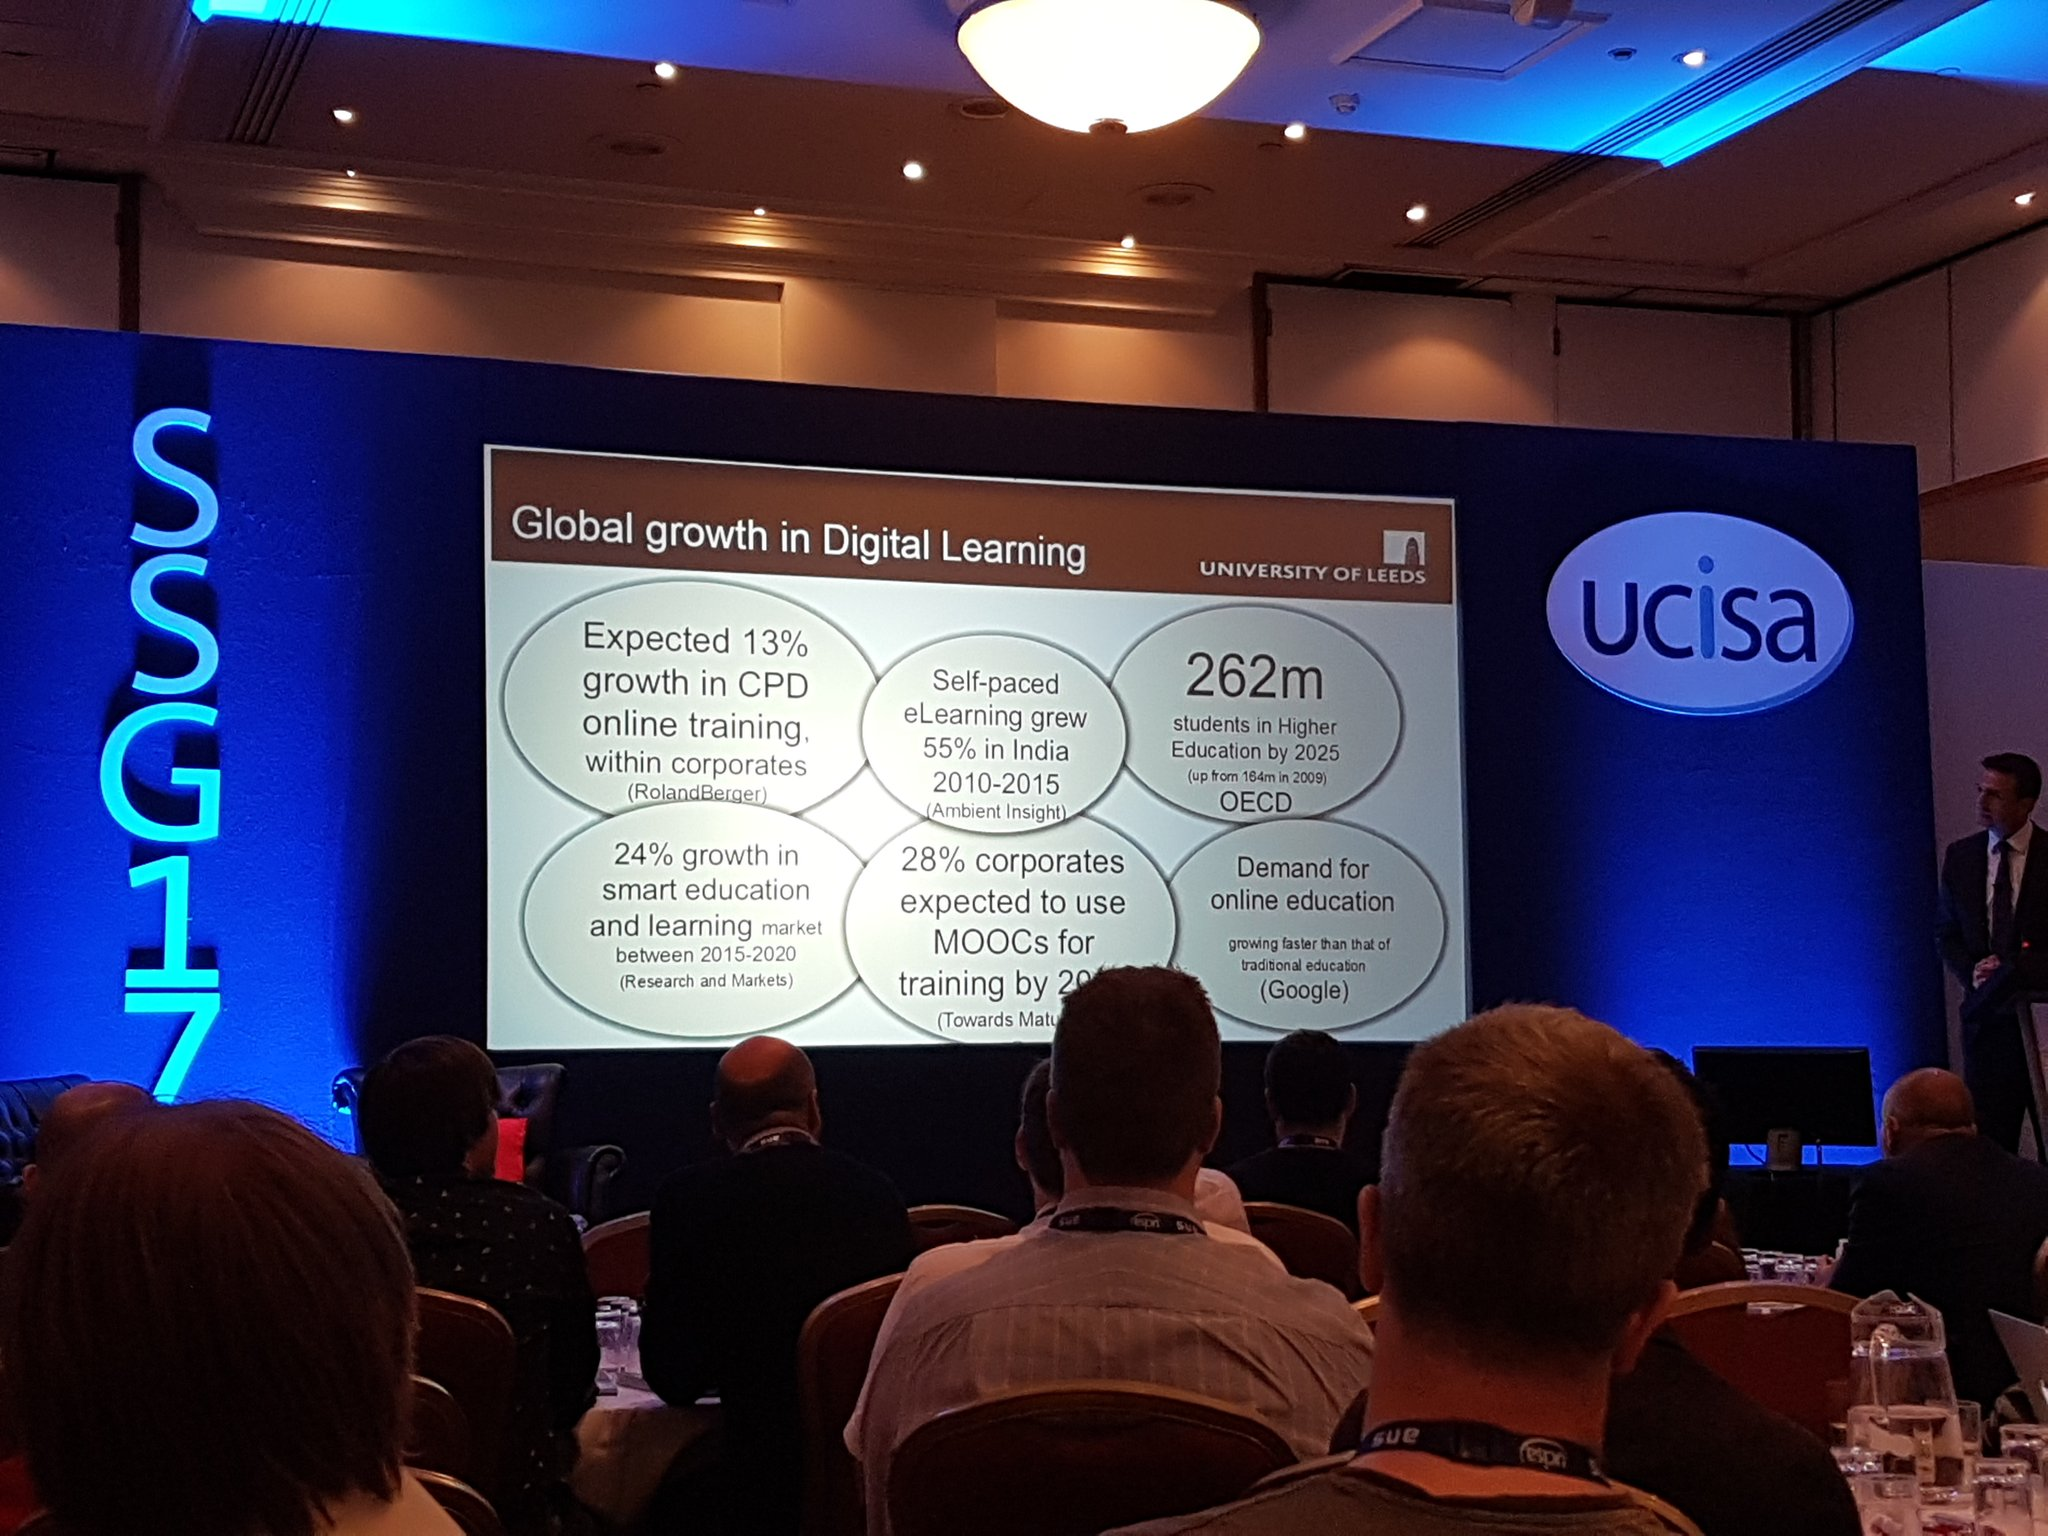 Looking beyond undergraduate level for digital learning. More and more people are digitally capable, it makes sense to widen focus #ussc17 https://t.co/nYzcjik3J2